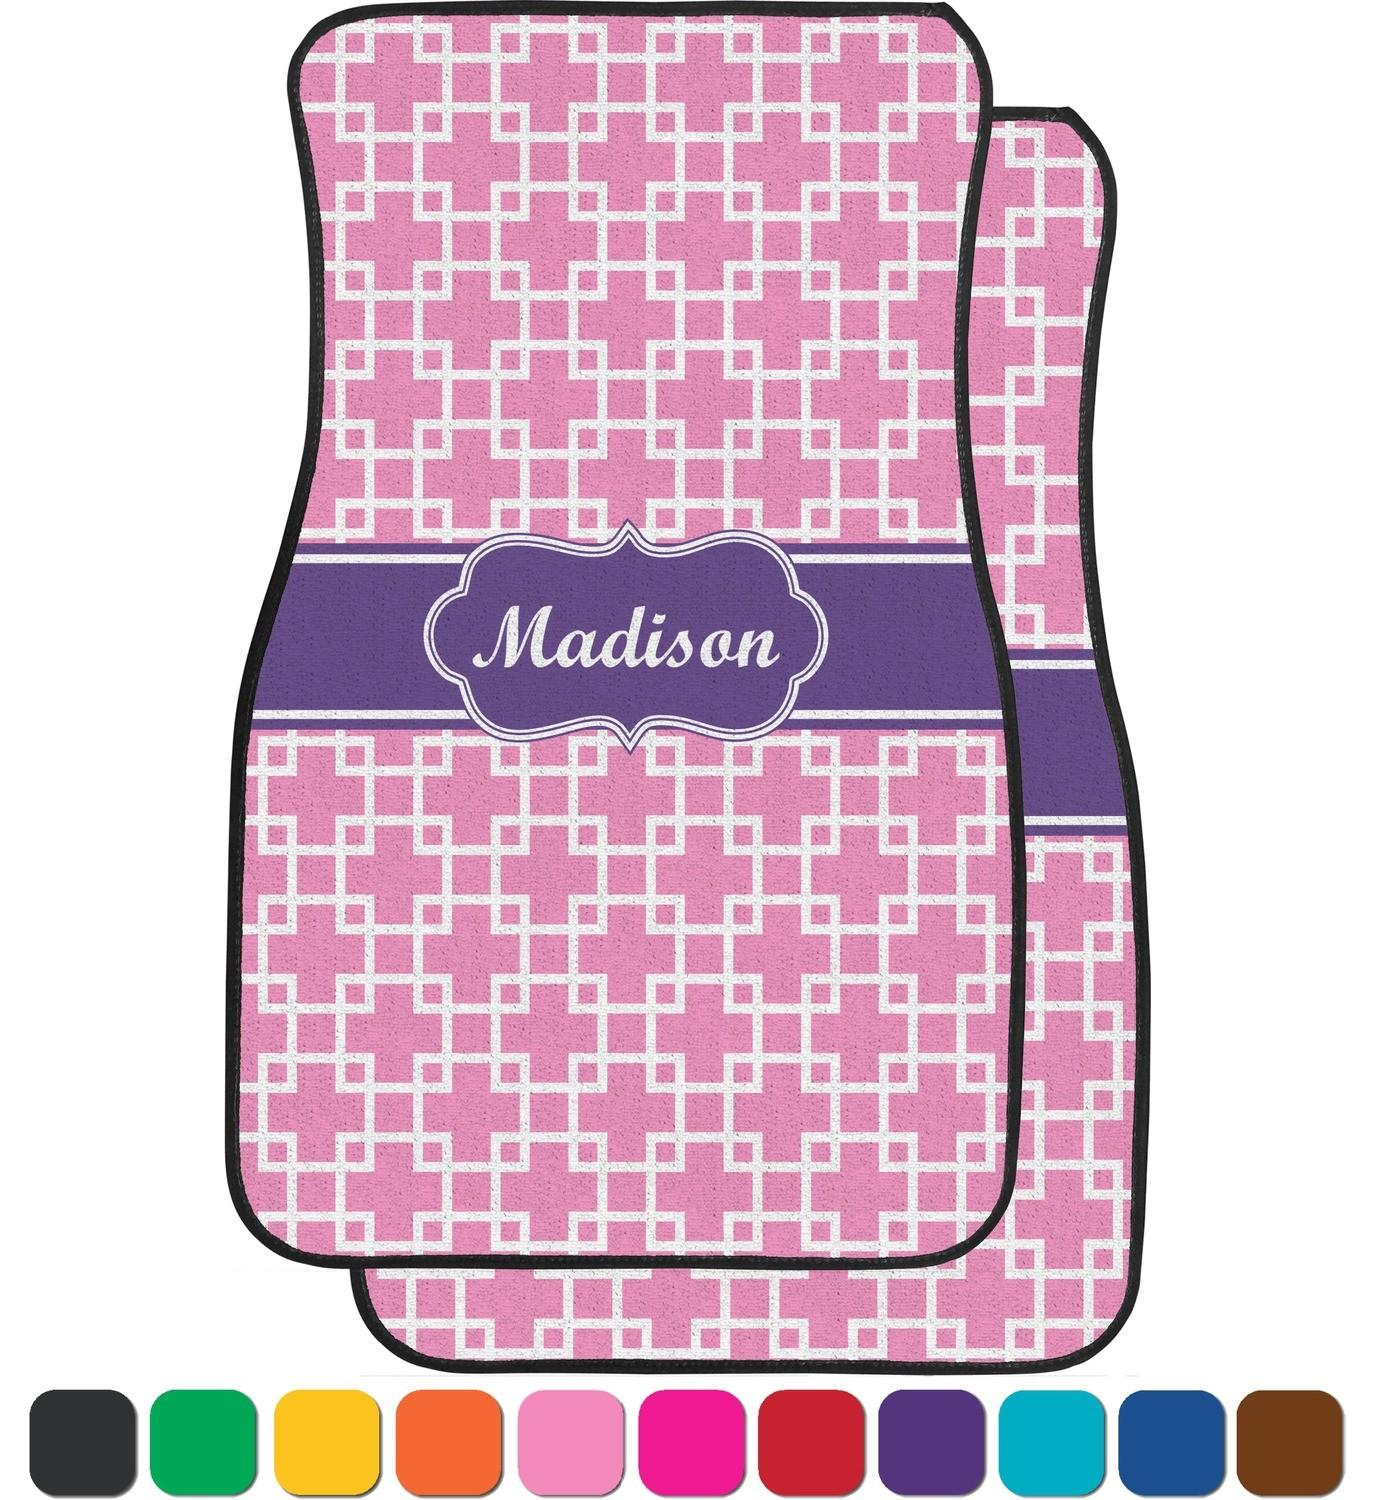 Linked Squares Car Floor Mats Front Seat Personalized